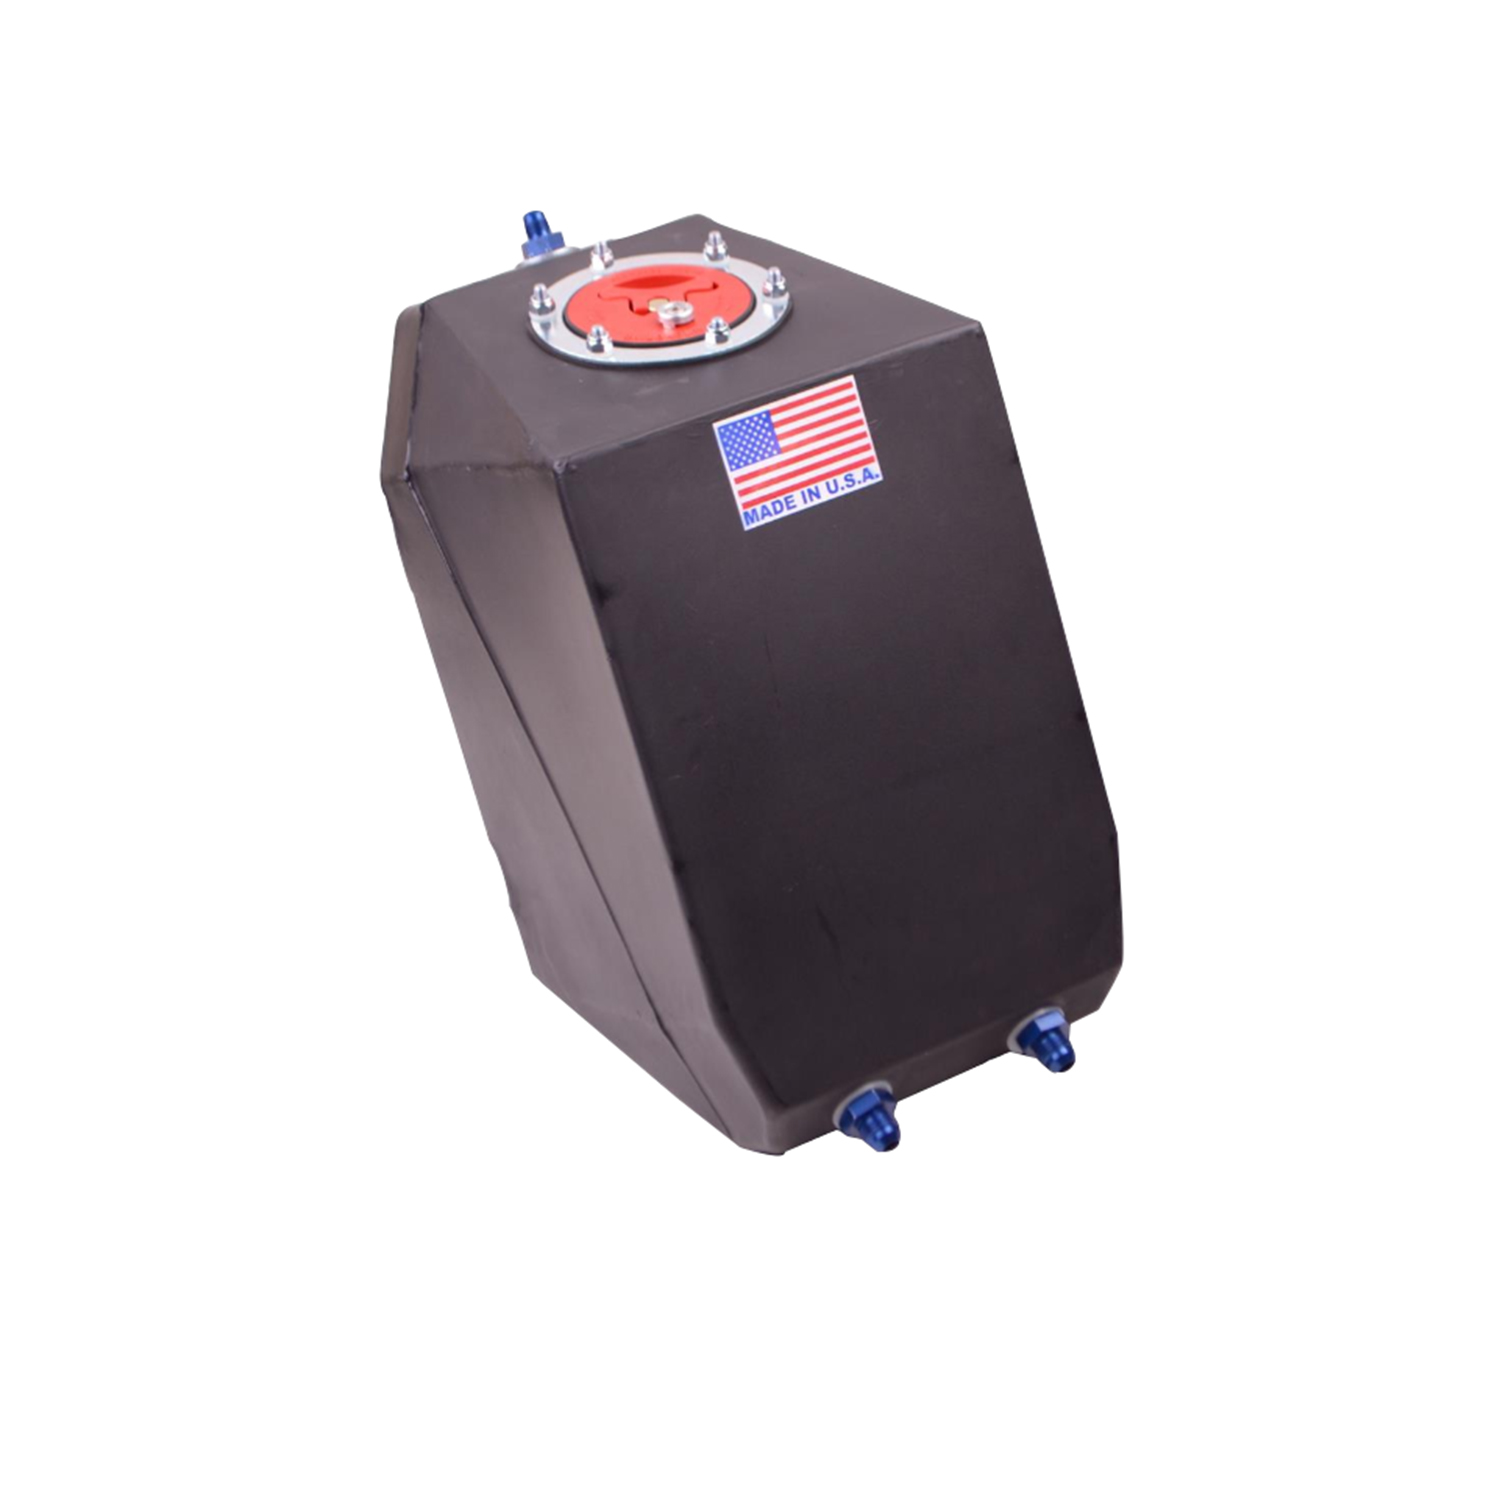 RJS Drag Race Fuel Cell, 4 Gallon Upright, Aircraft Style